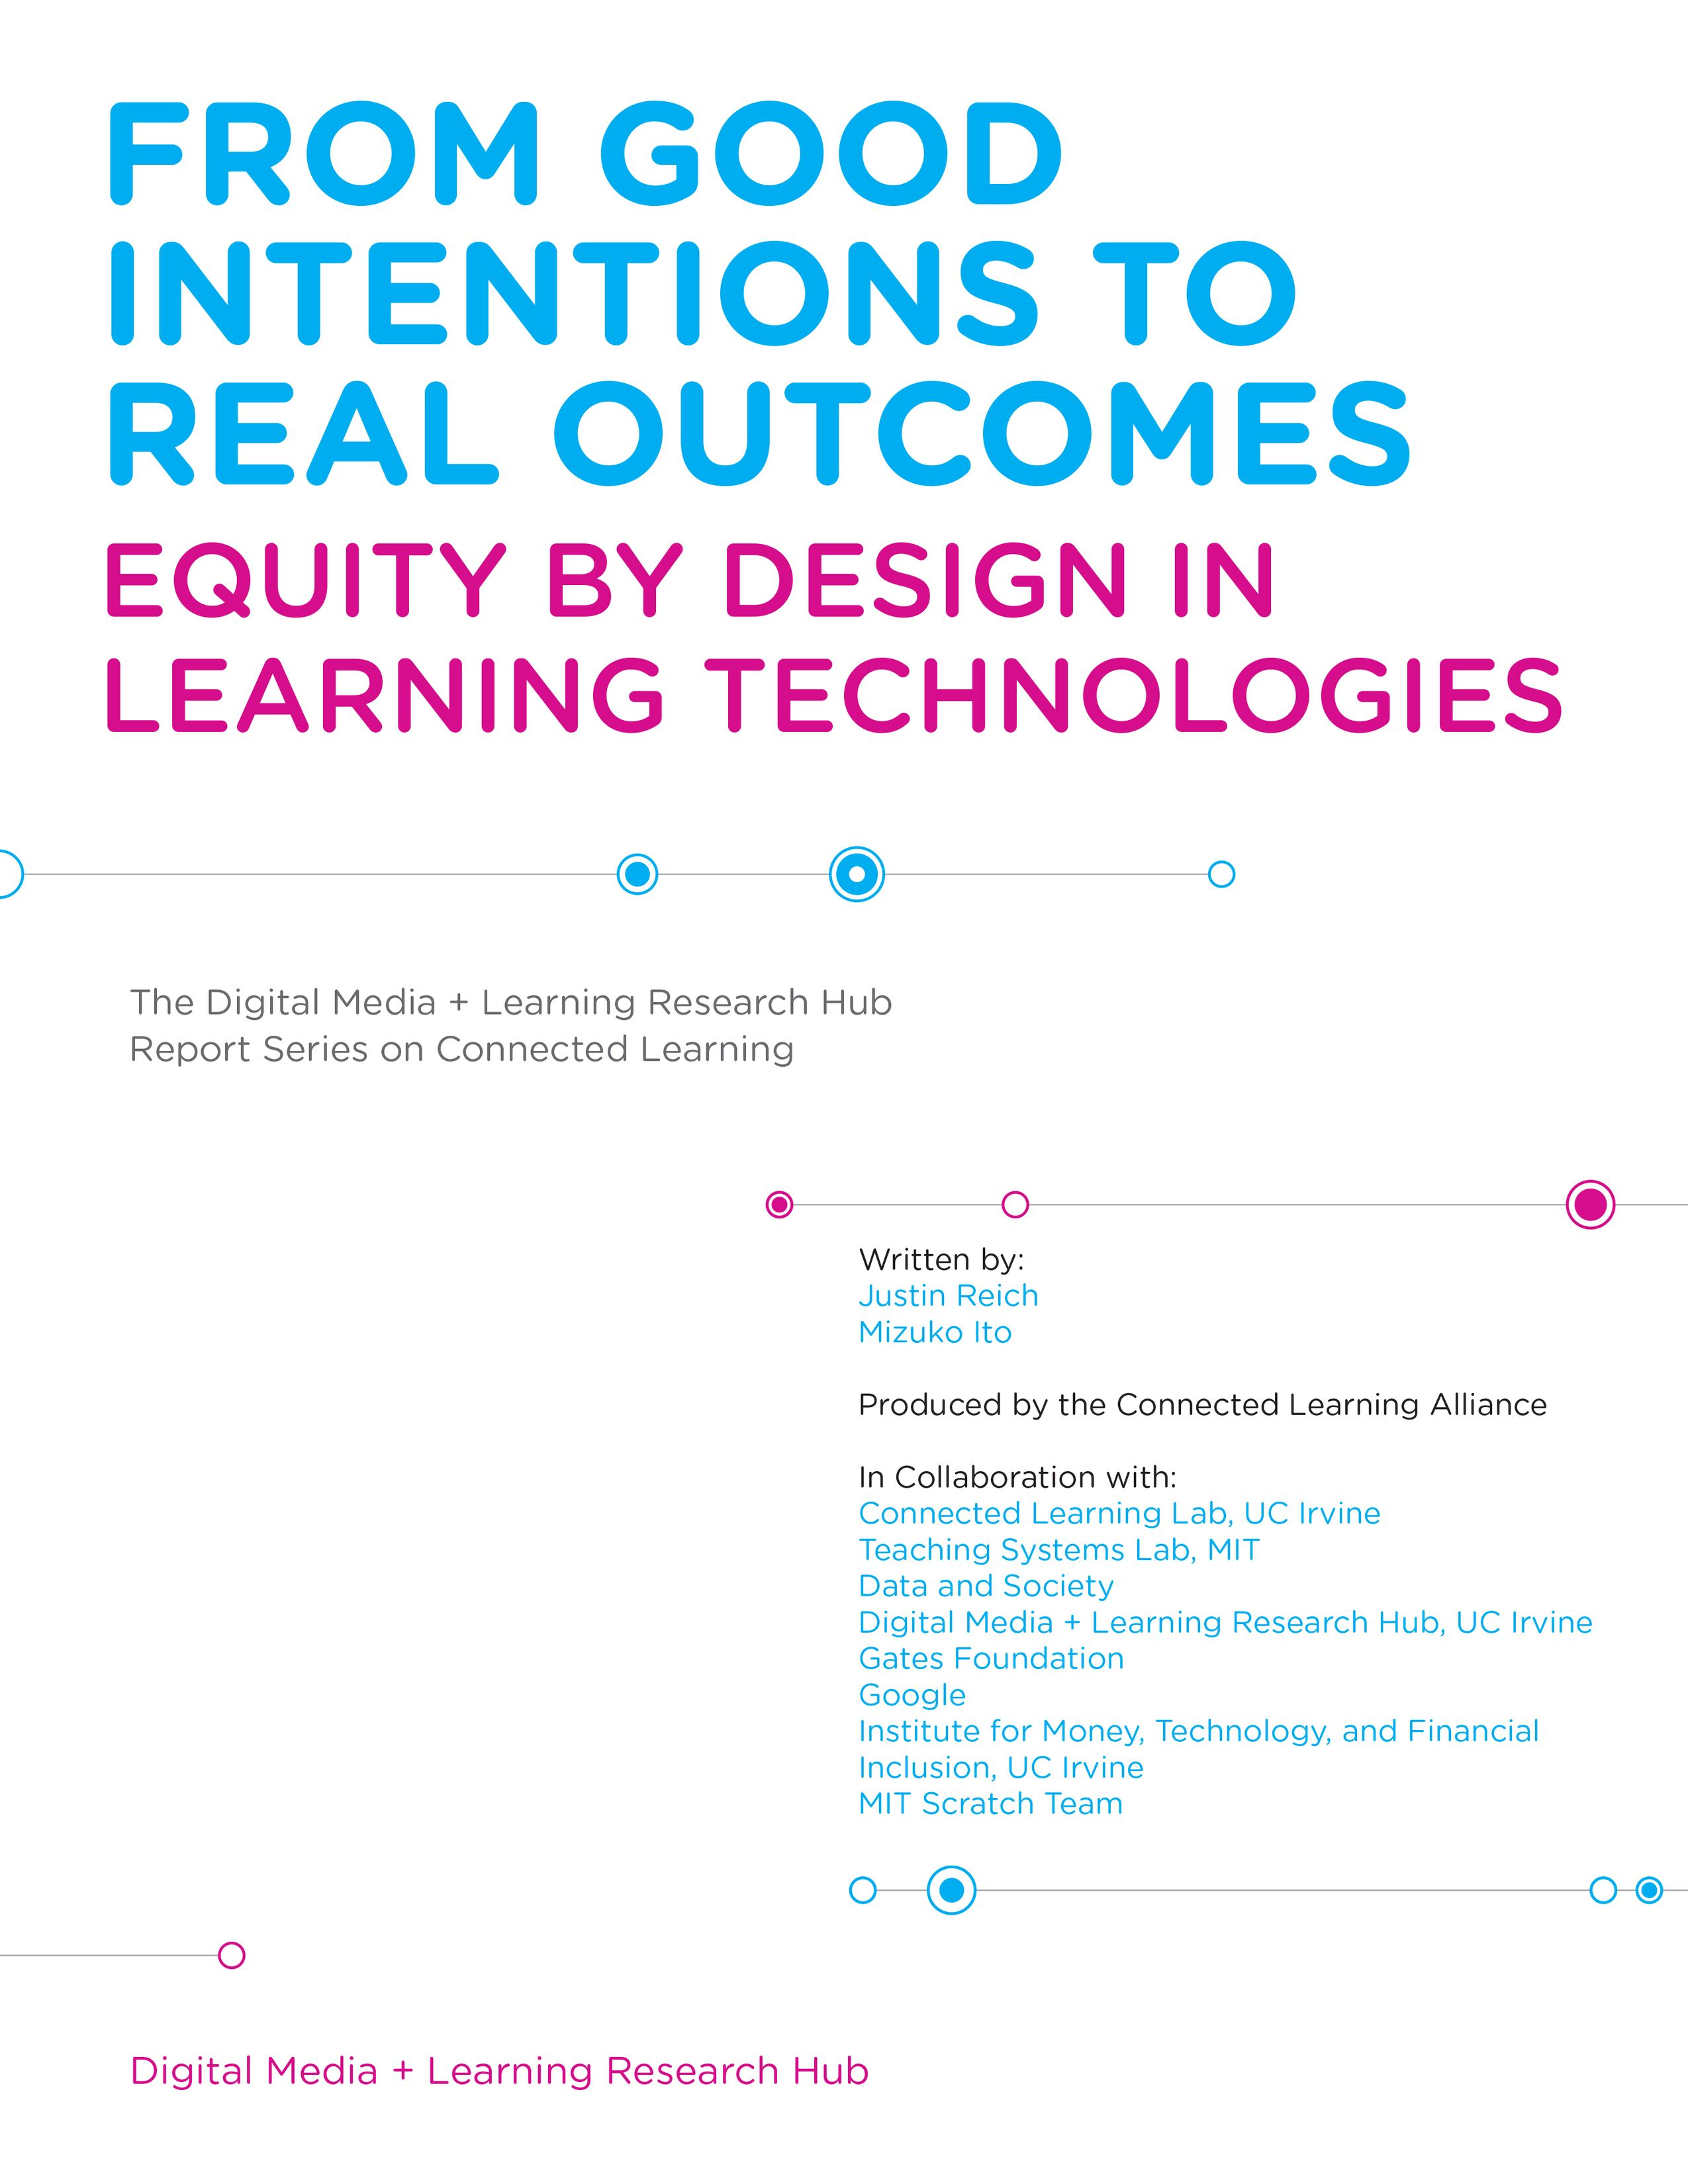 From Good Intentions To Real Outcomes Connected Learning